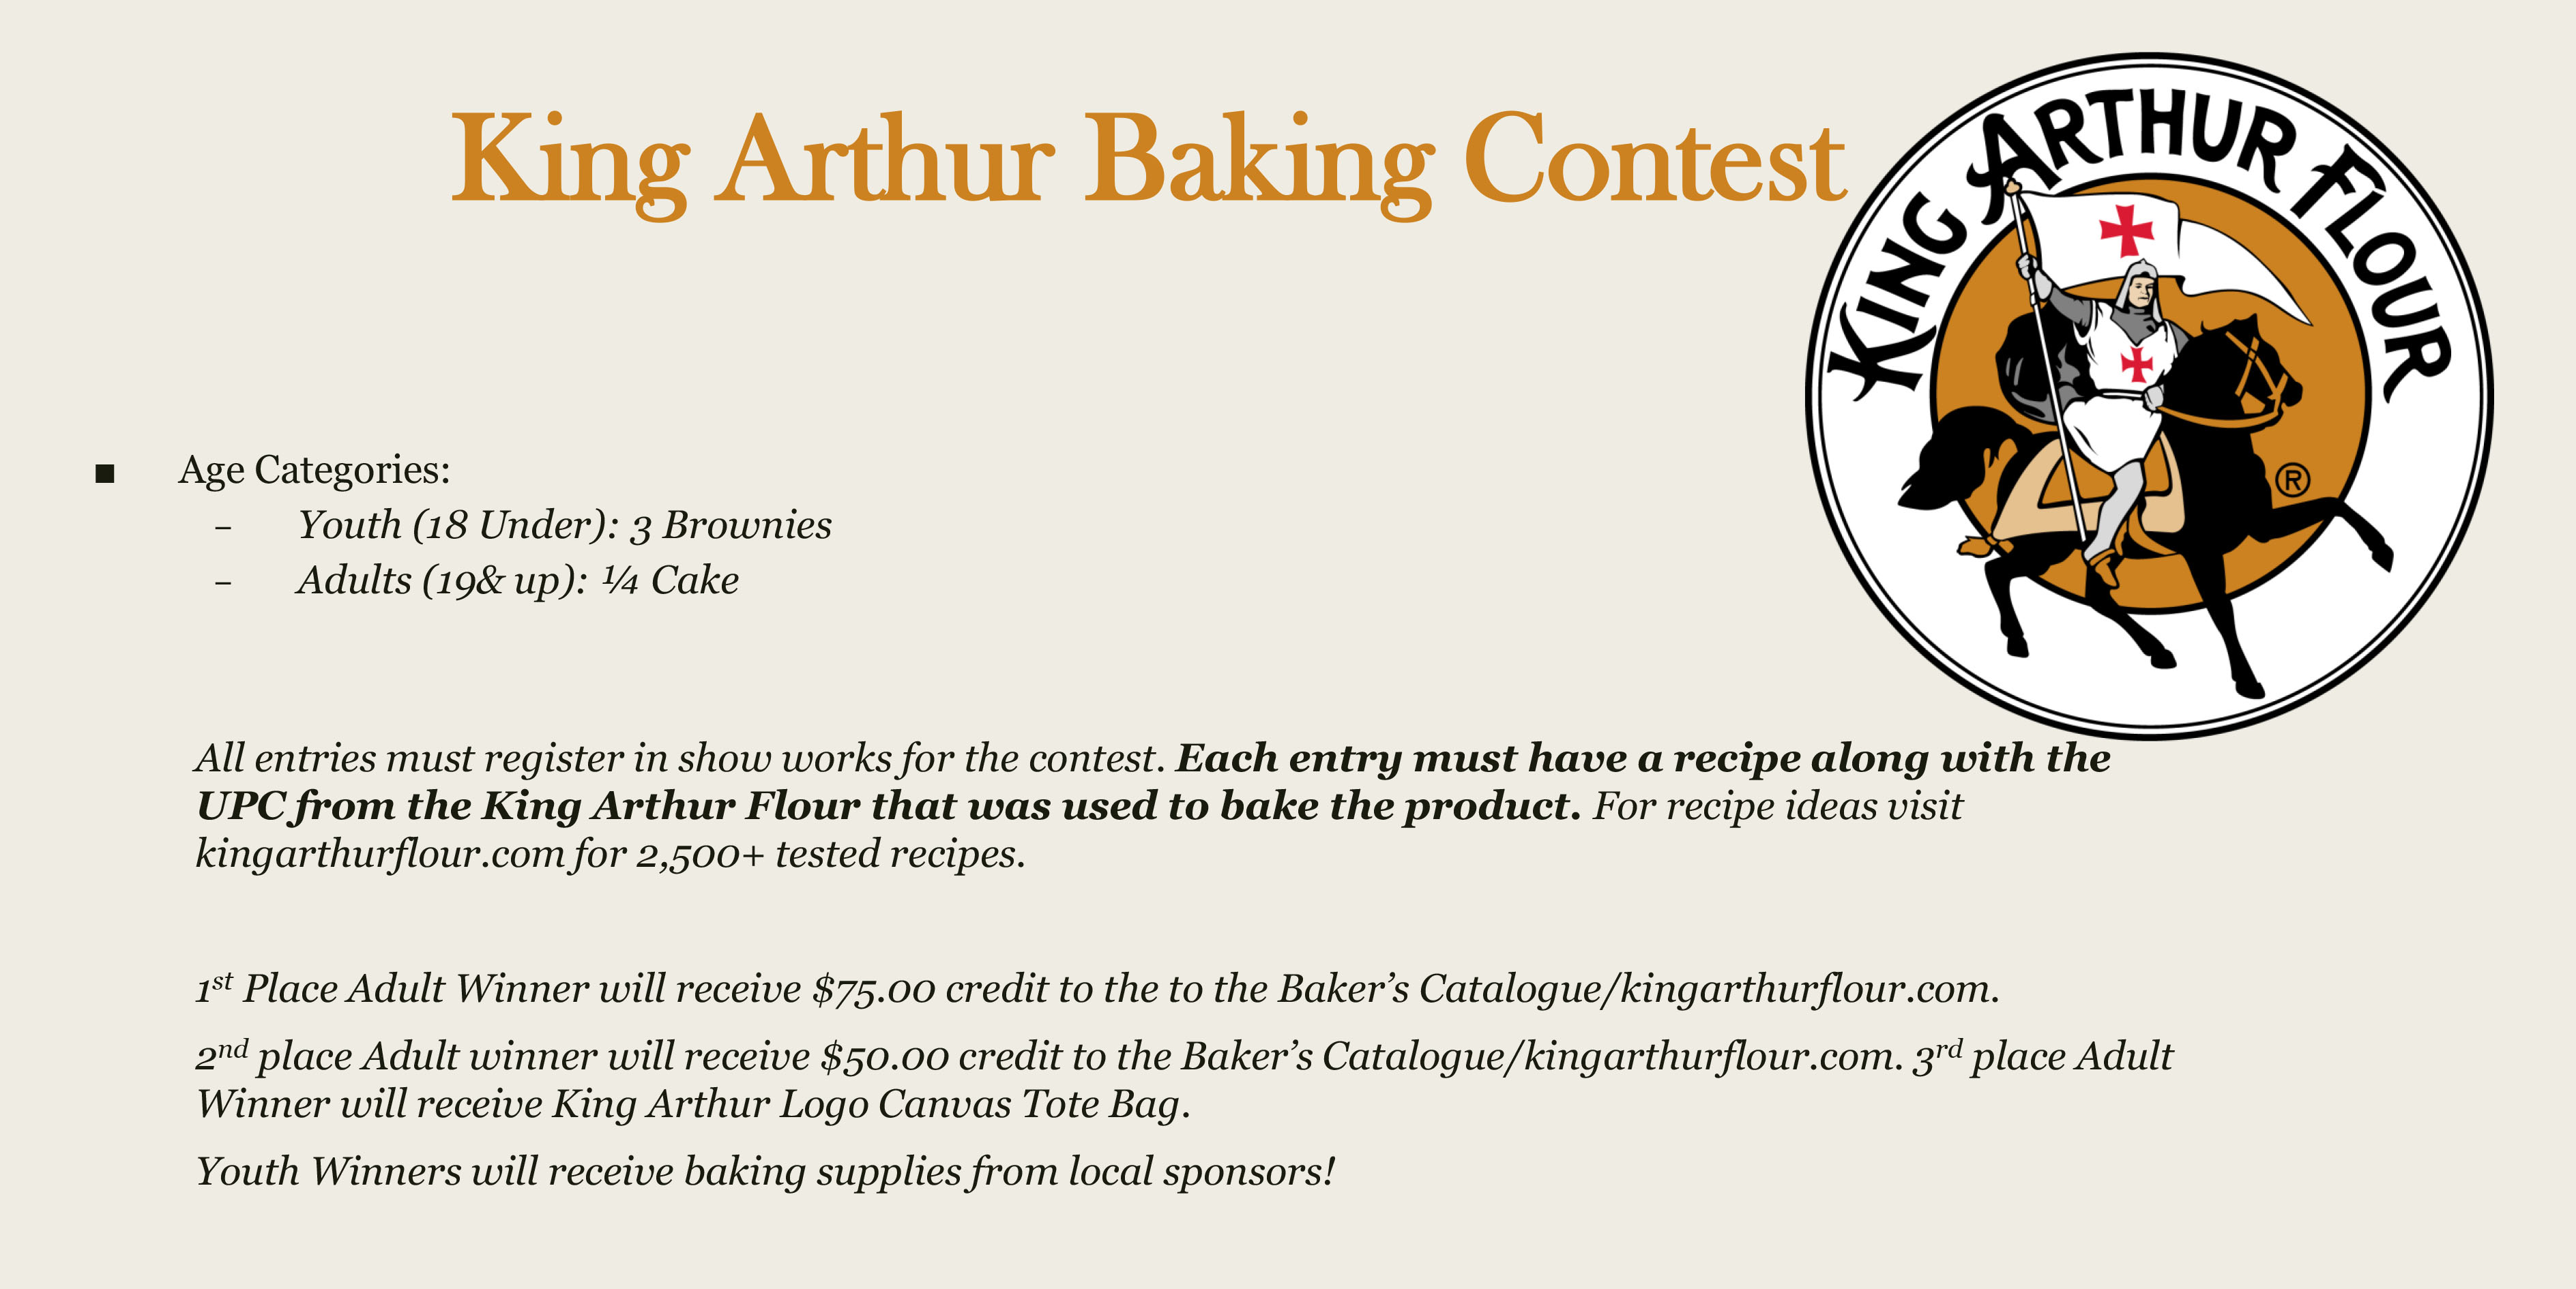 King Arthur Baking Contest